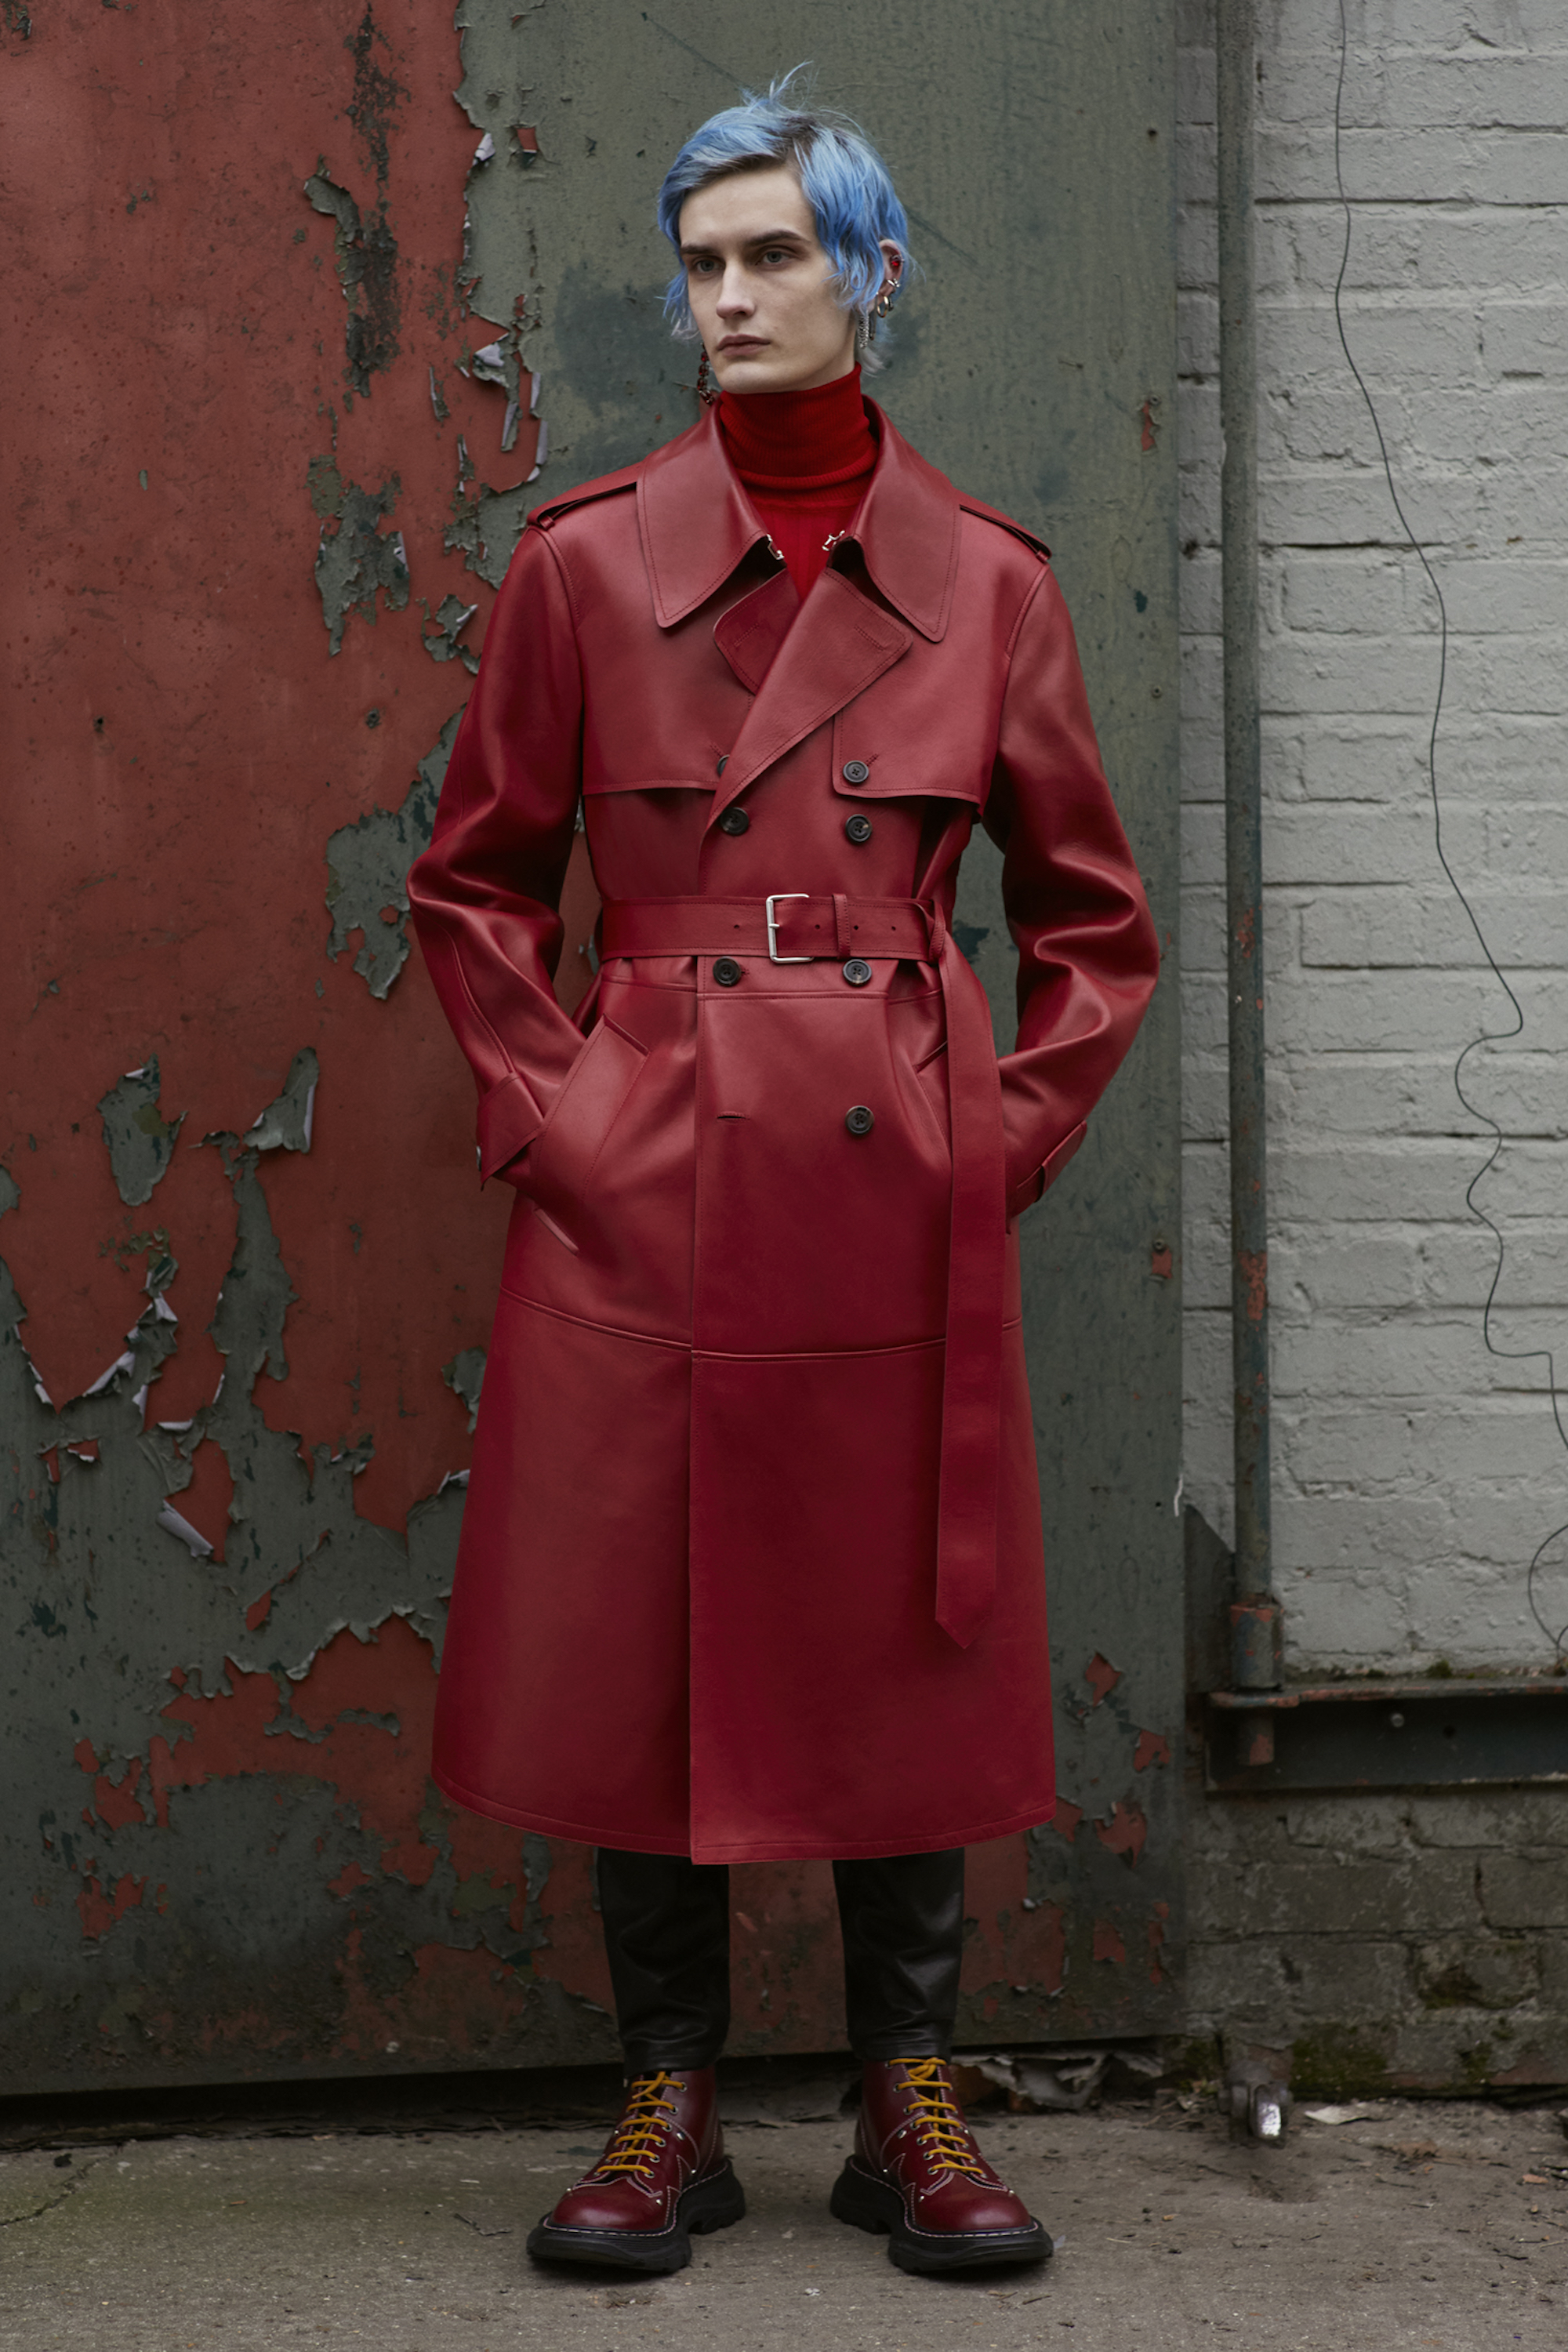 Alexander McQueen AW19 menswear red trench coat